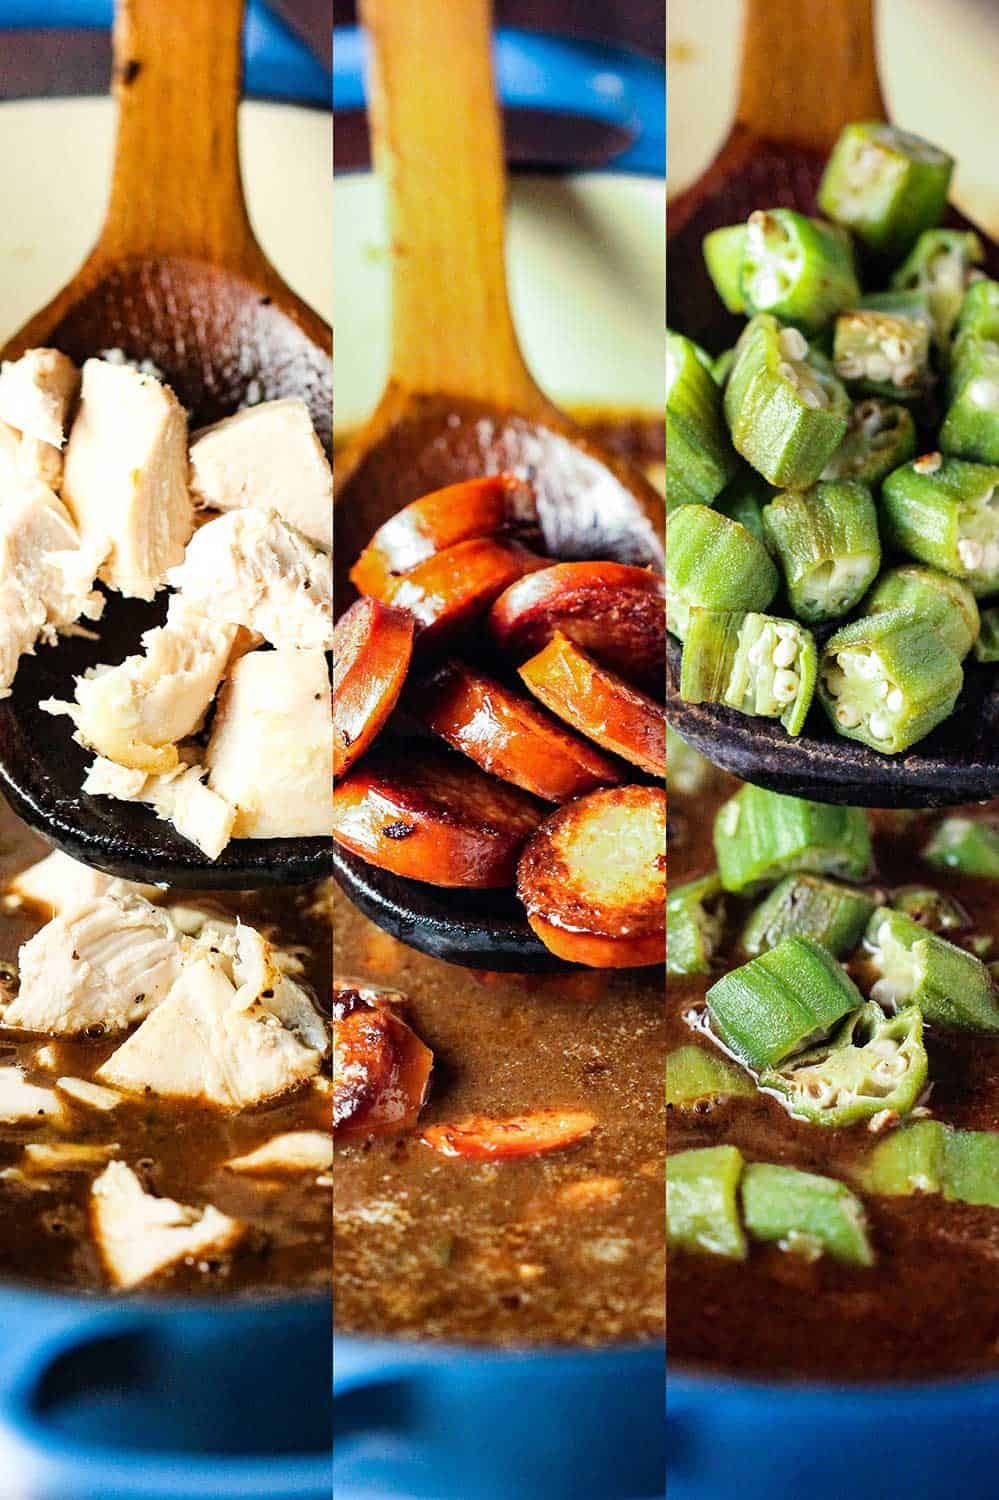 Three side-by-side images of chicken, sausage, and okra being dropped into a pot of gumbo.